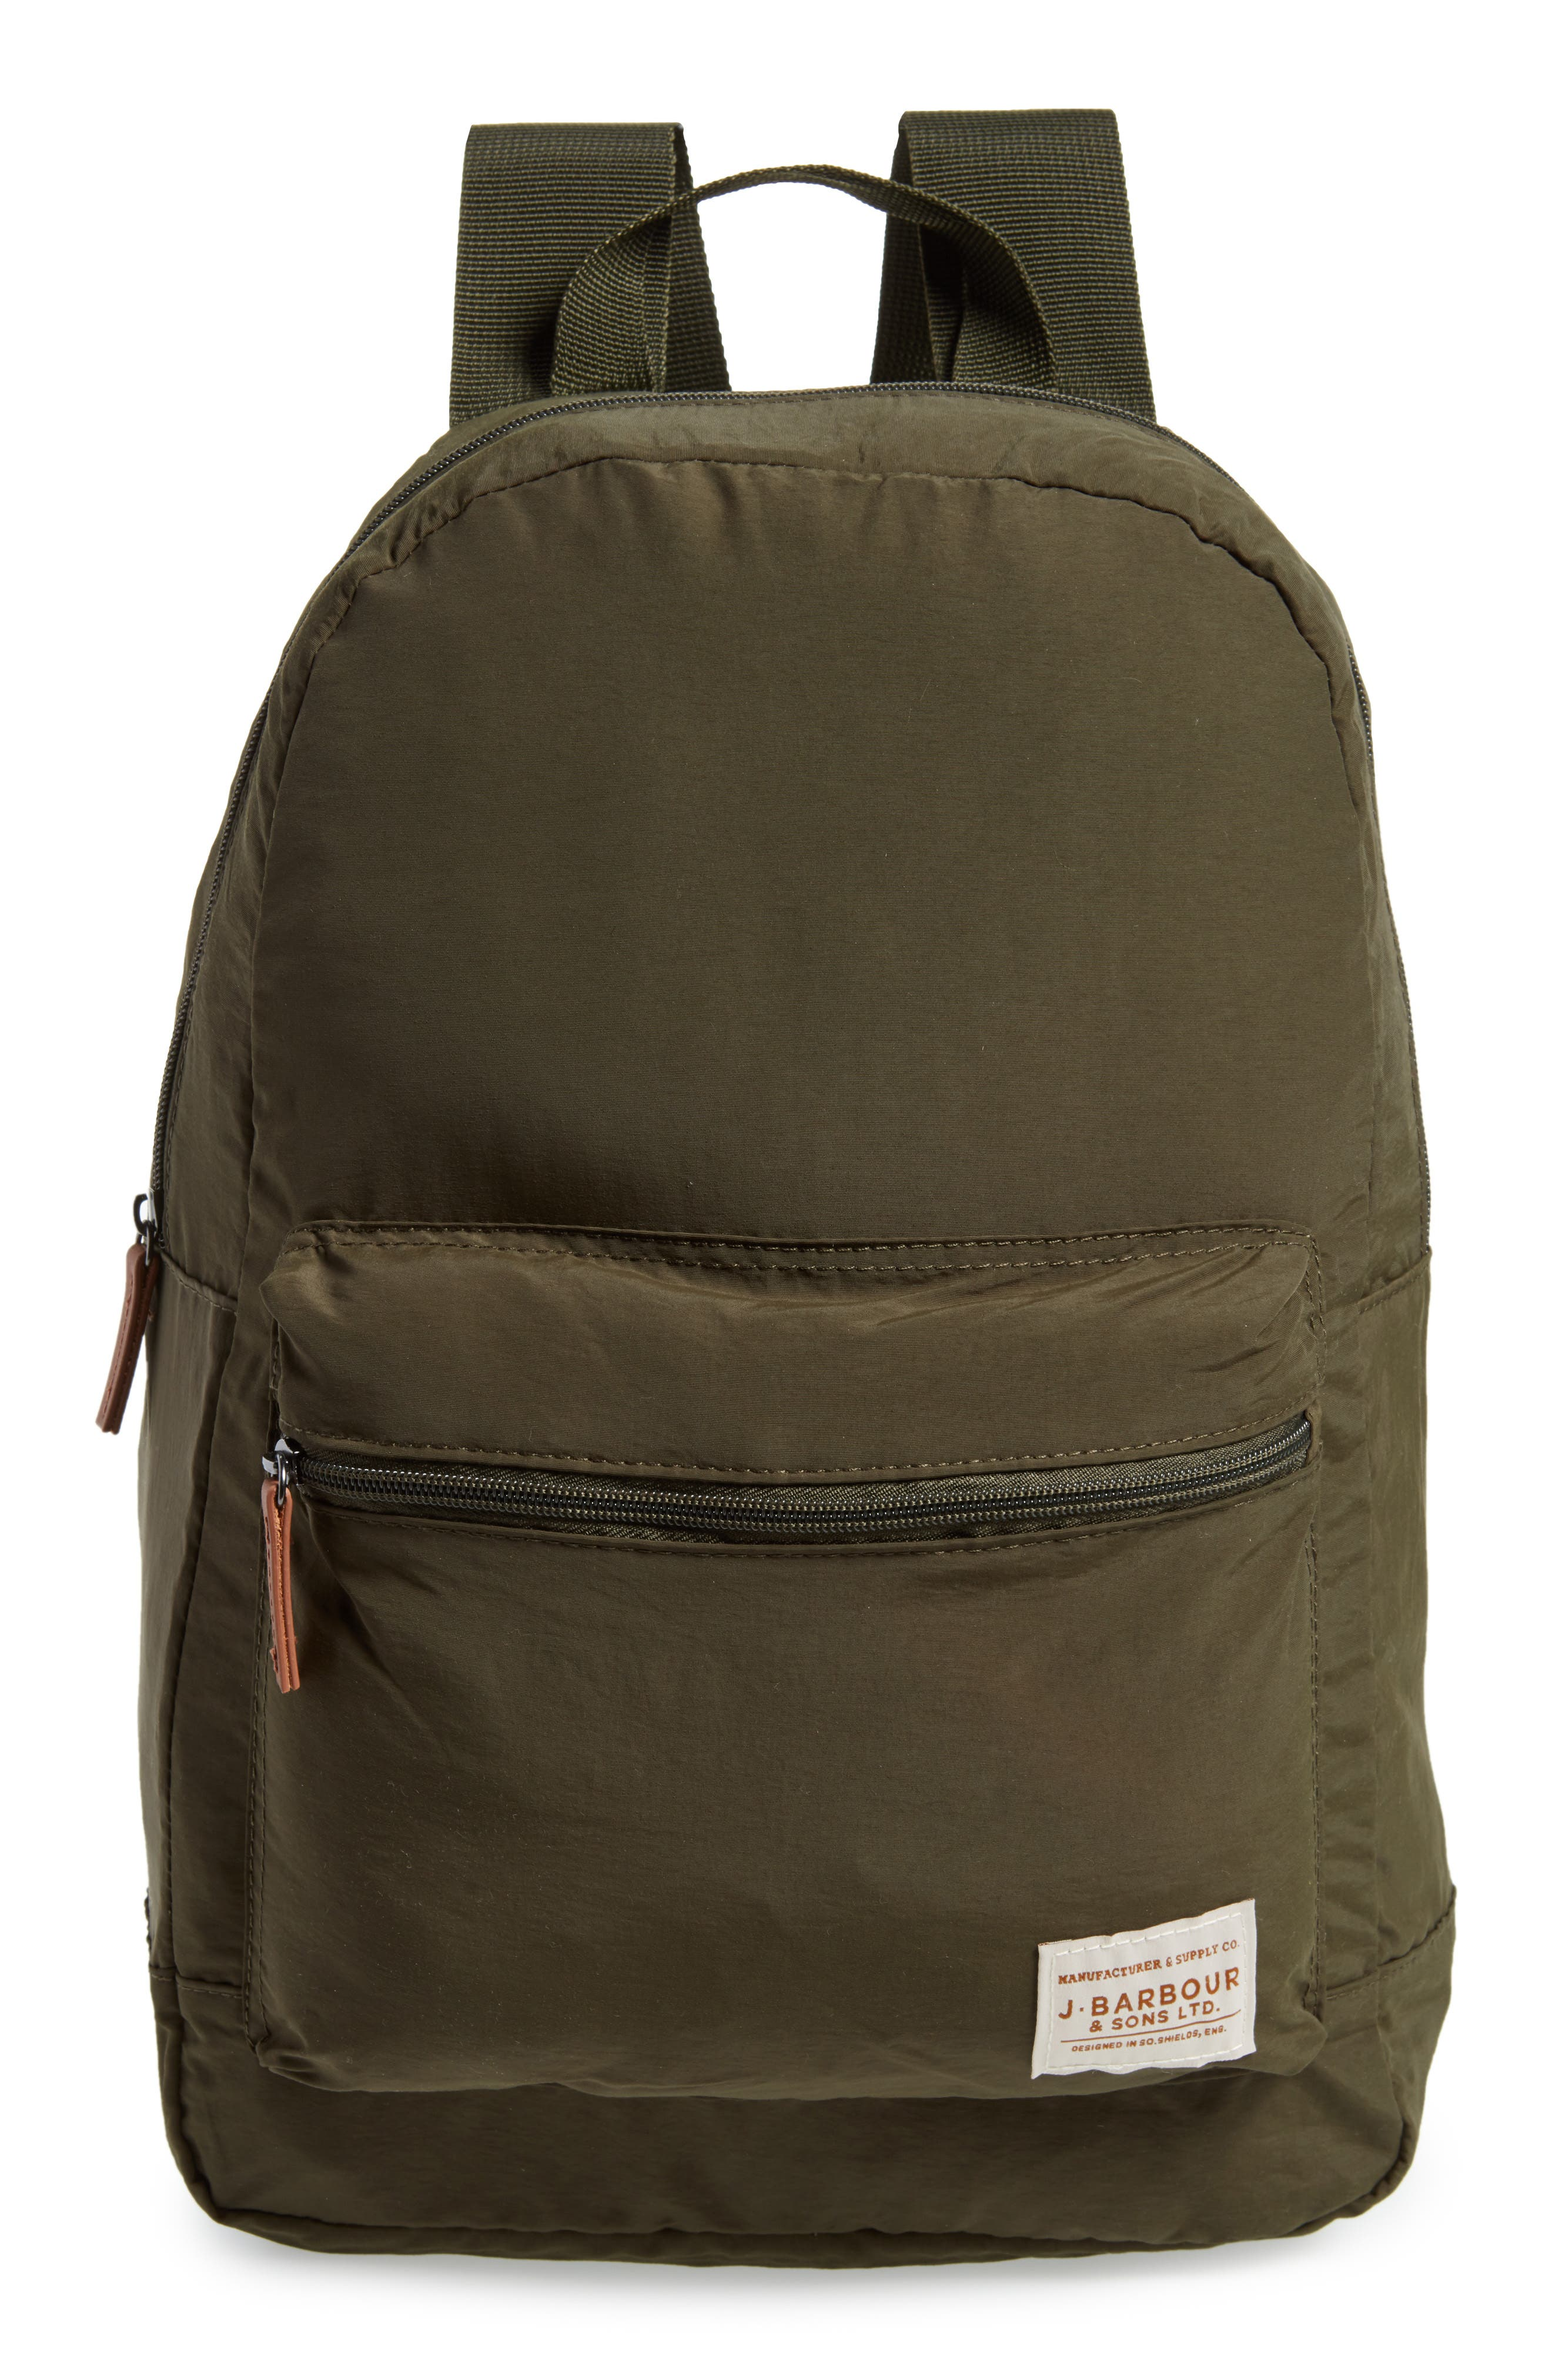 Barbour Beauly Packable Backpack - Green